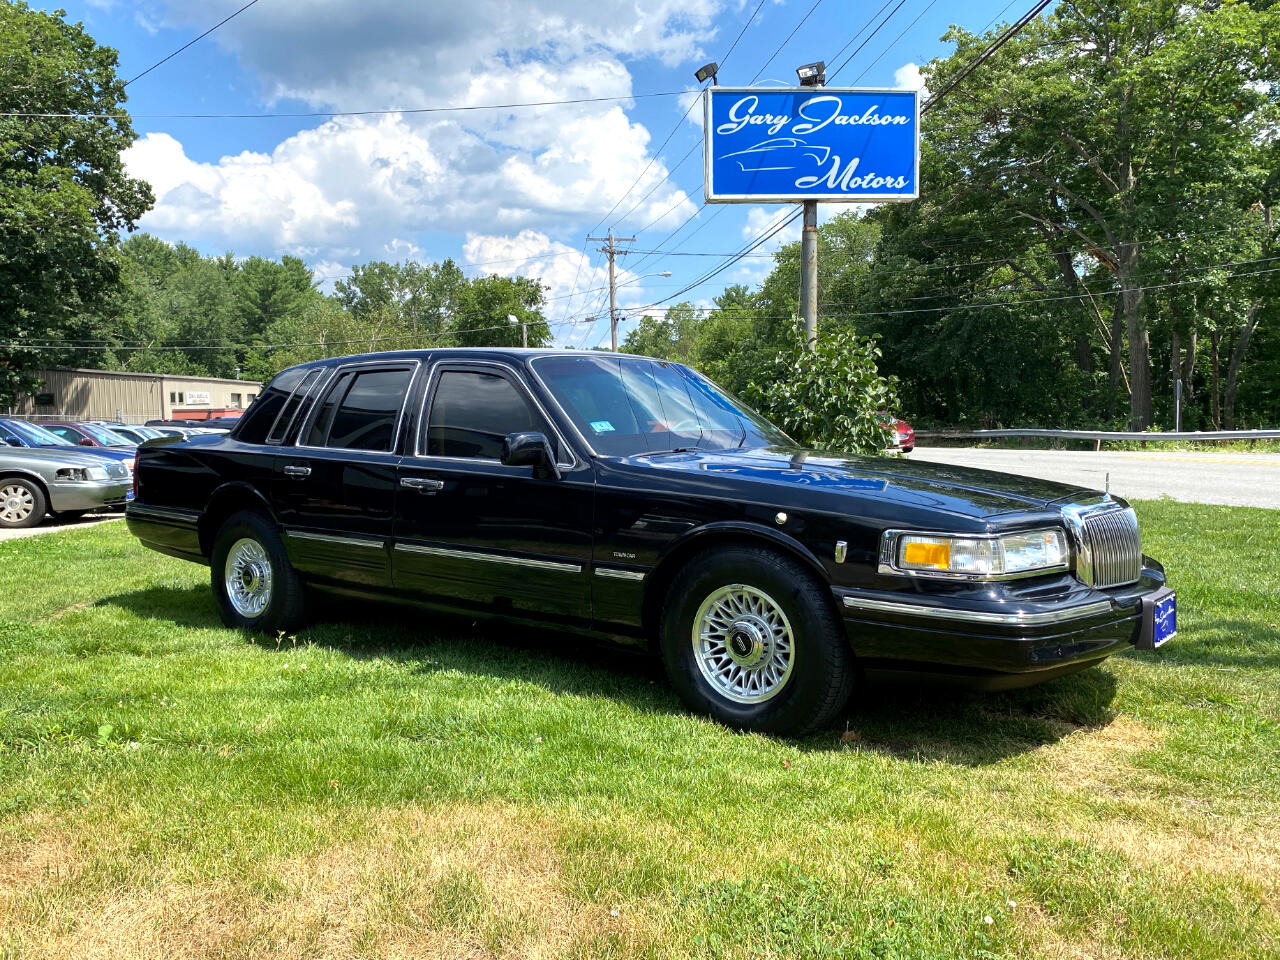 Used 1997 Lincoln Armored Town Car For Sale In Charlton Ma 01507 Gary Jackson Motors